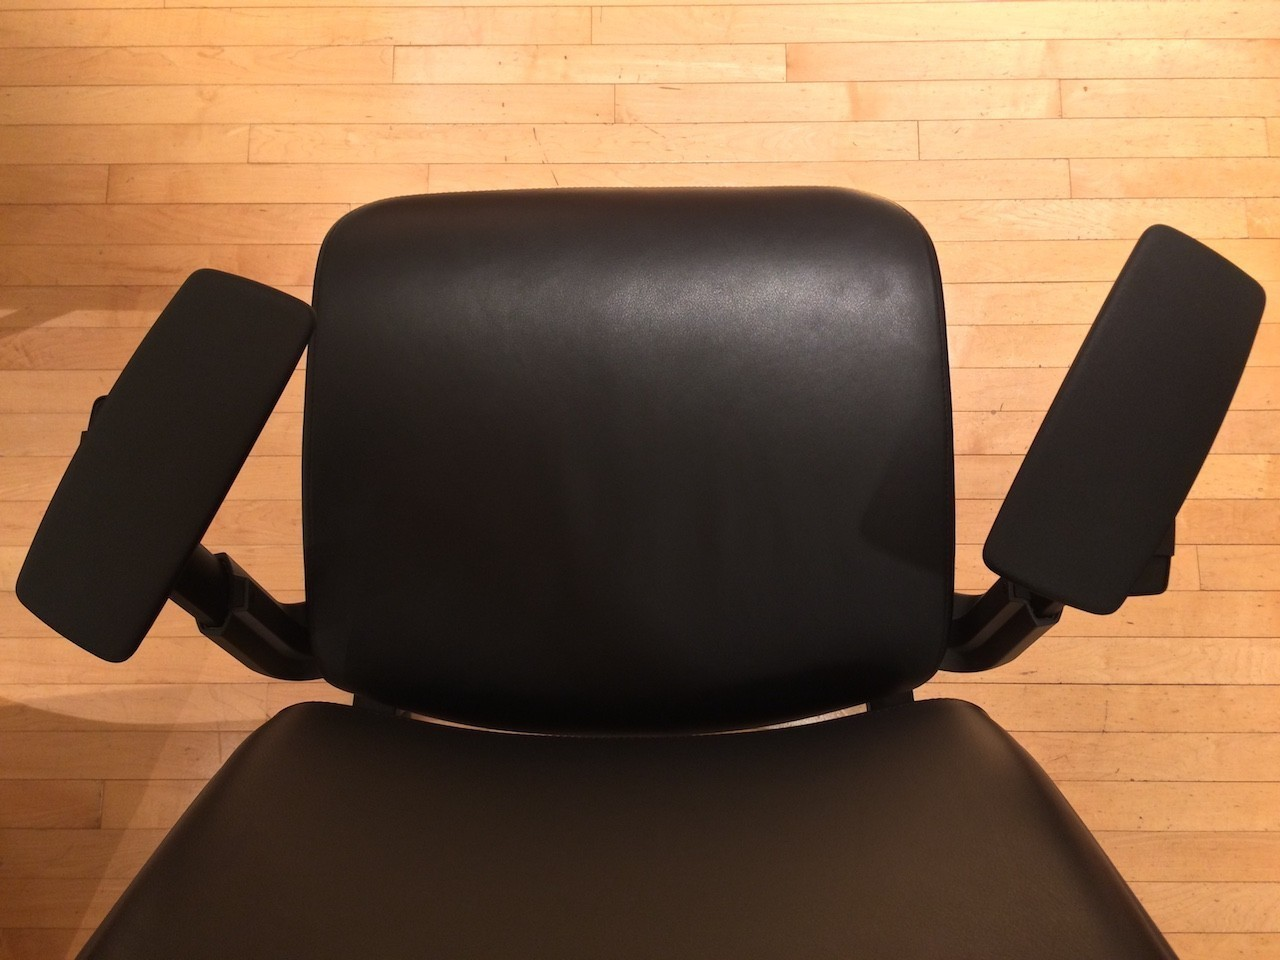 Steelcase Think Chair armrest swivel